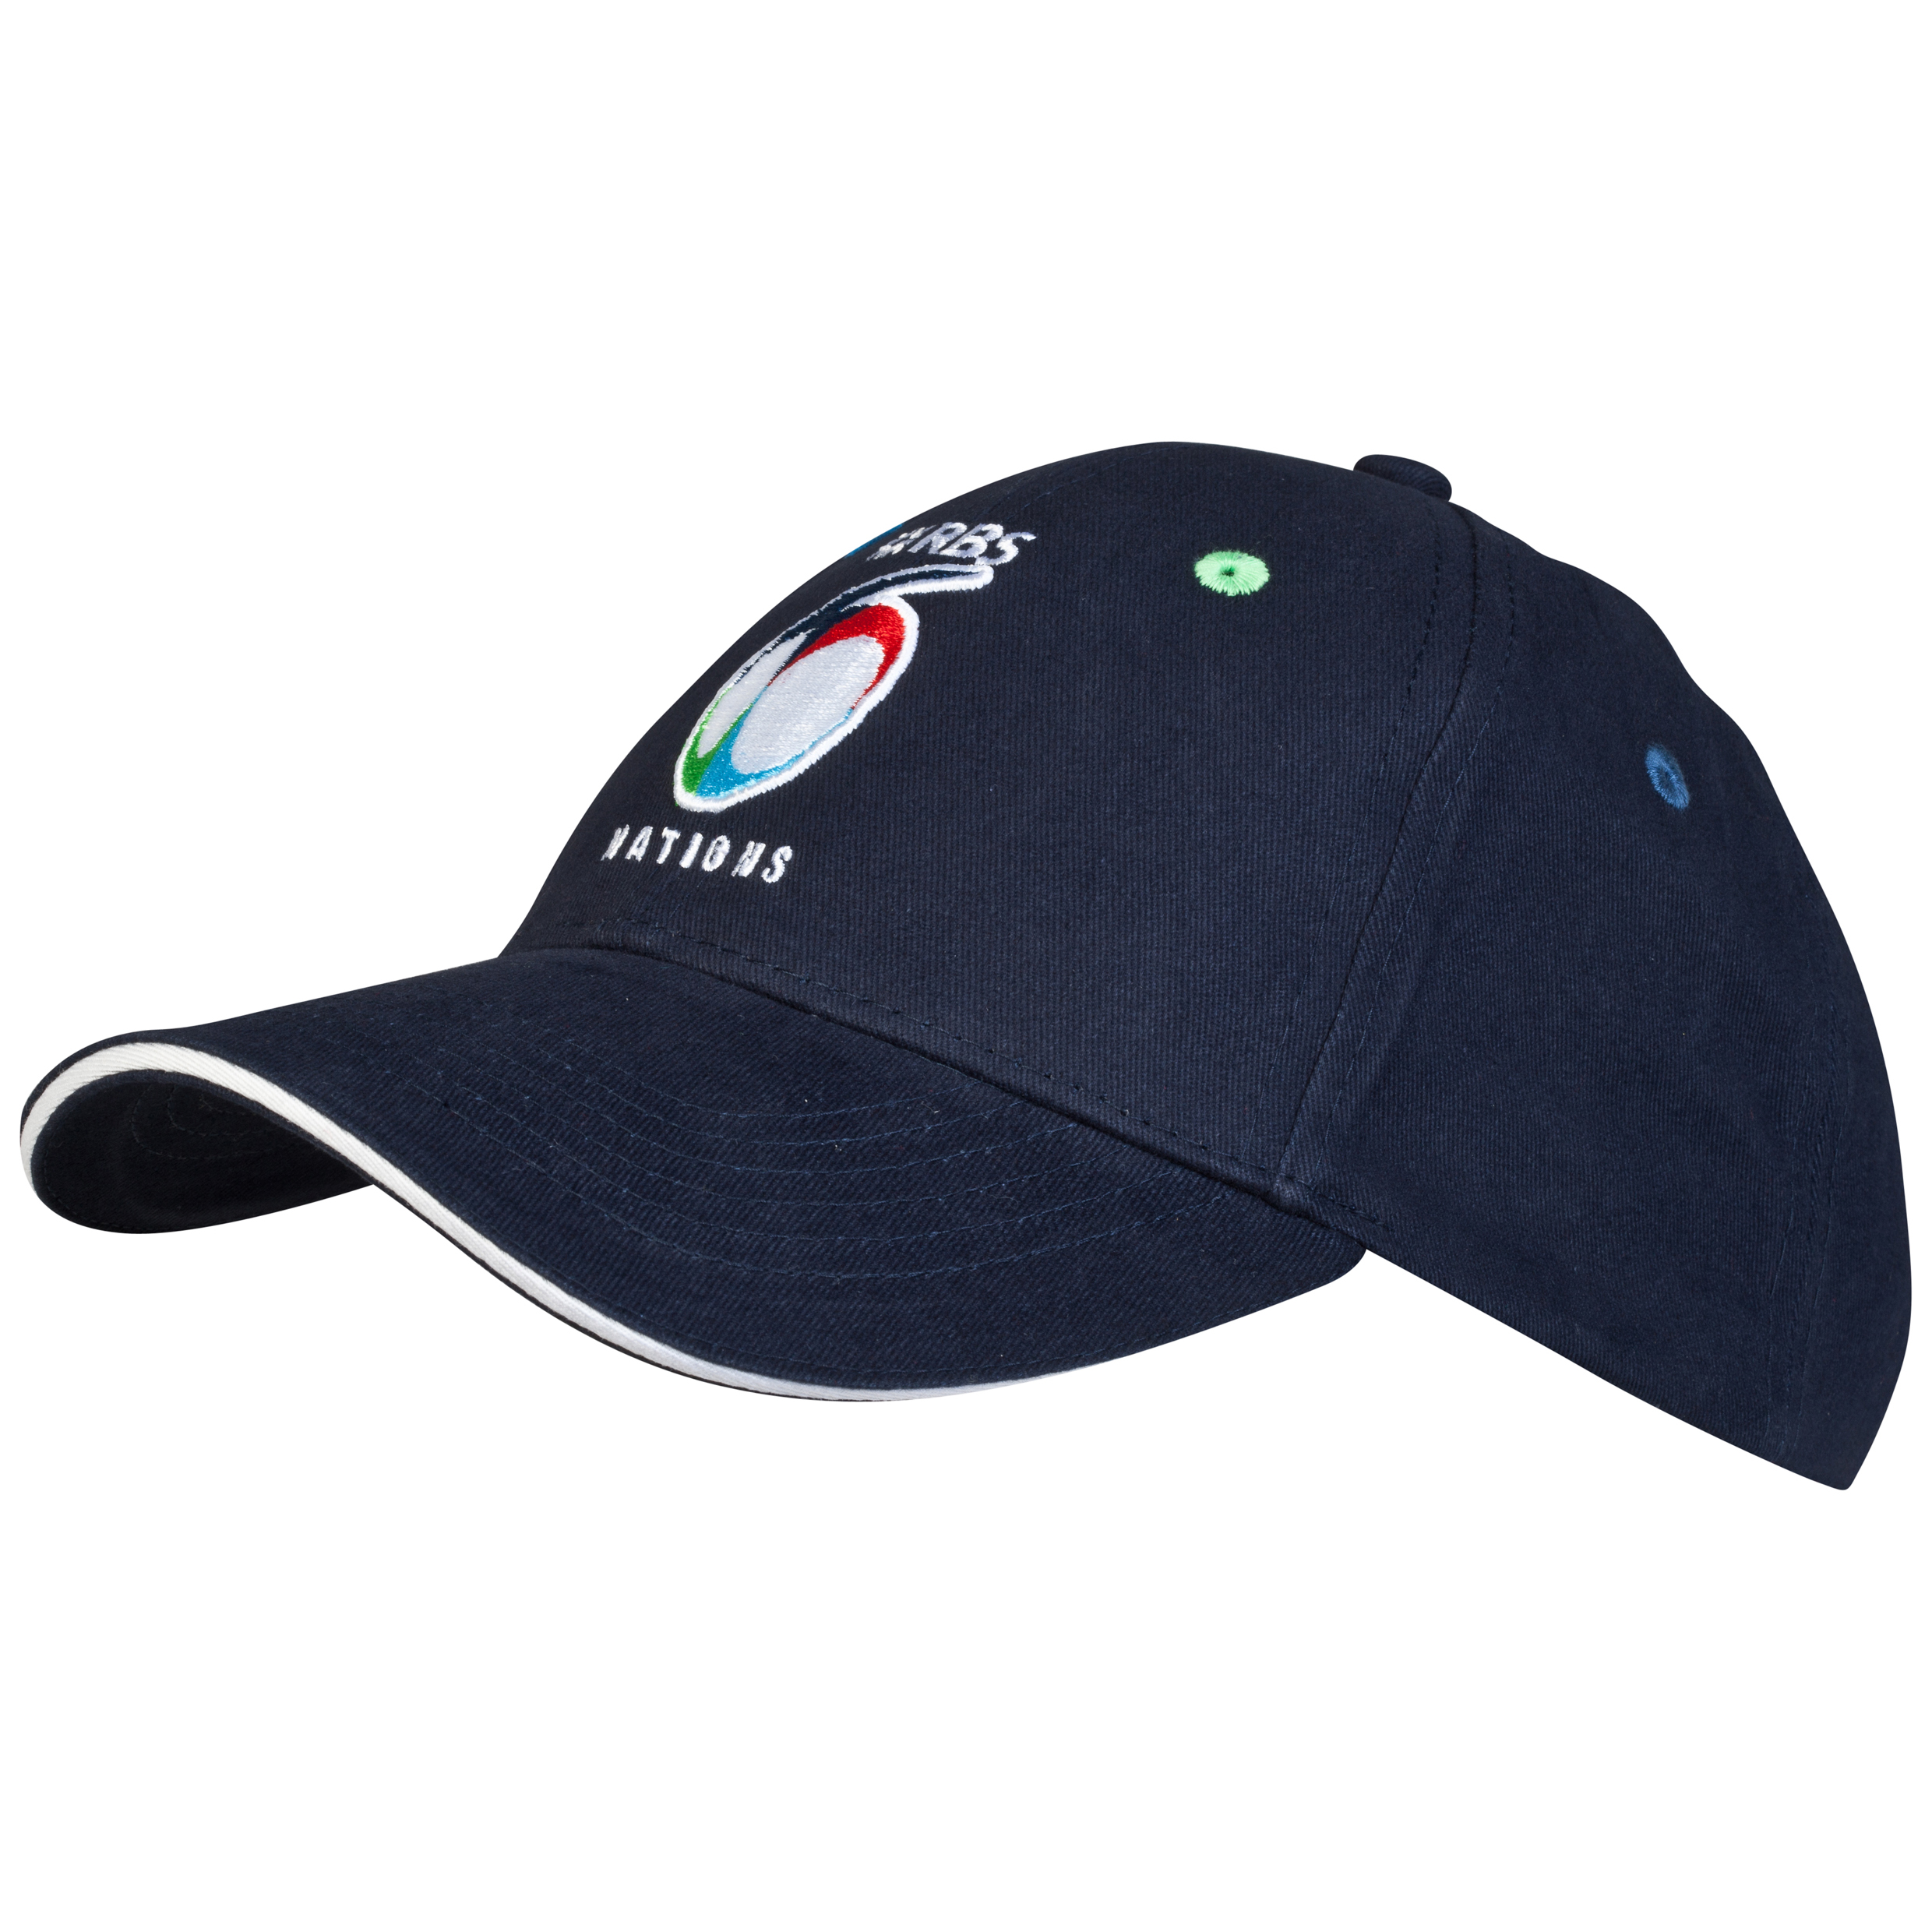 RBS Six Nations Classic Cap - Mens - Navy